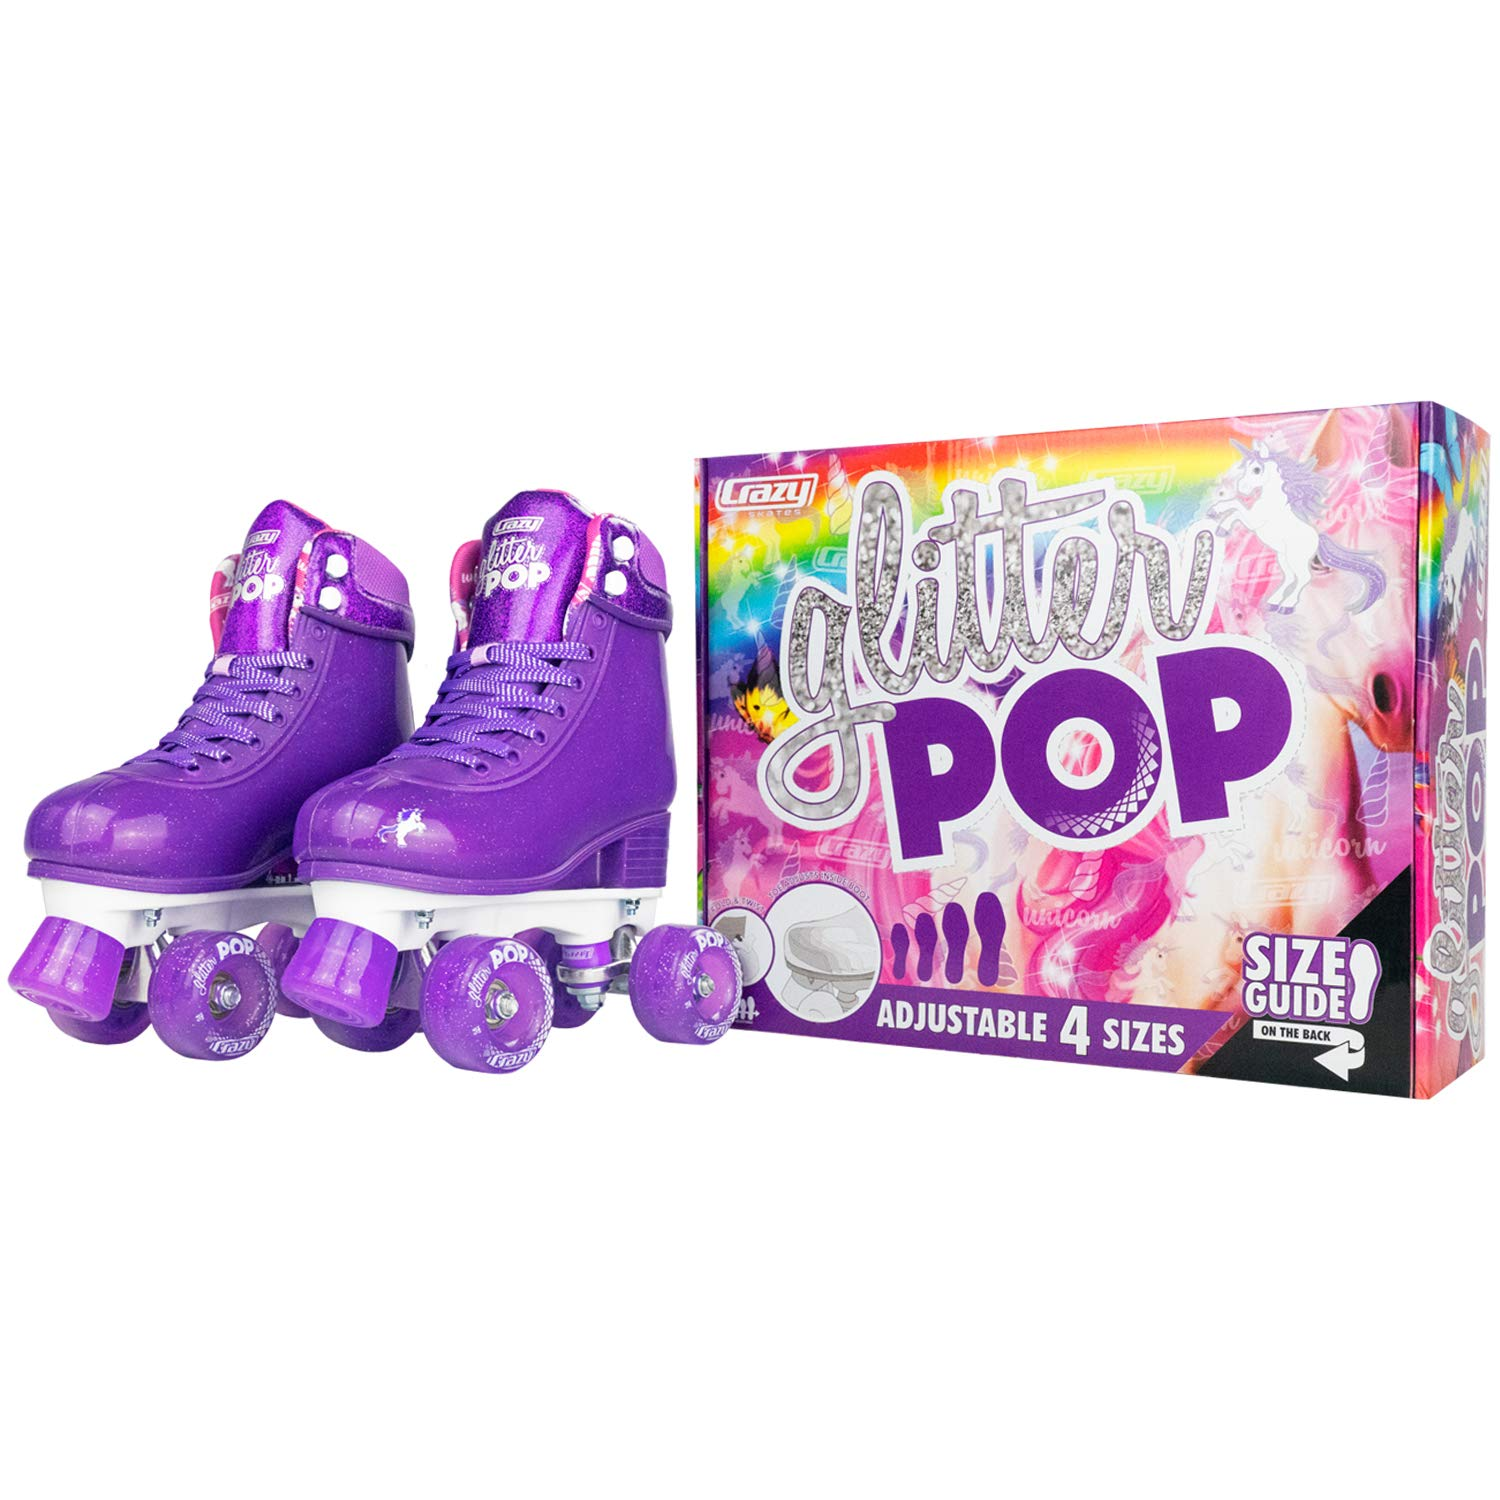 Crazy Skates Glitter POP Adjustable Roller Skates for Girls and Boys | Size Adjustable Quad Skates That Fit 4 Shoe Sizes | Purple (Sizes 3-6) by Crazy Skates (Image #5)